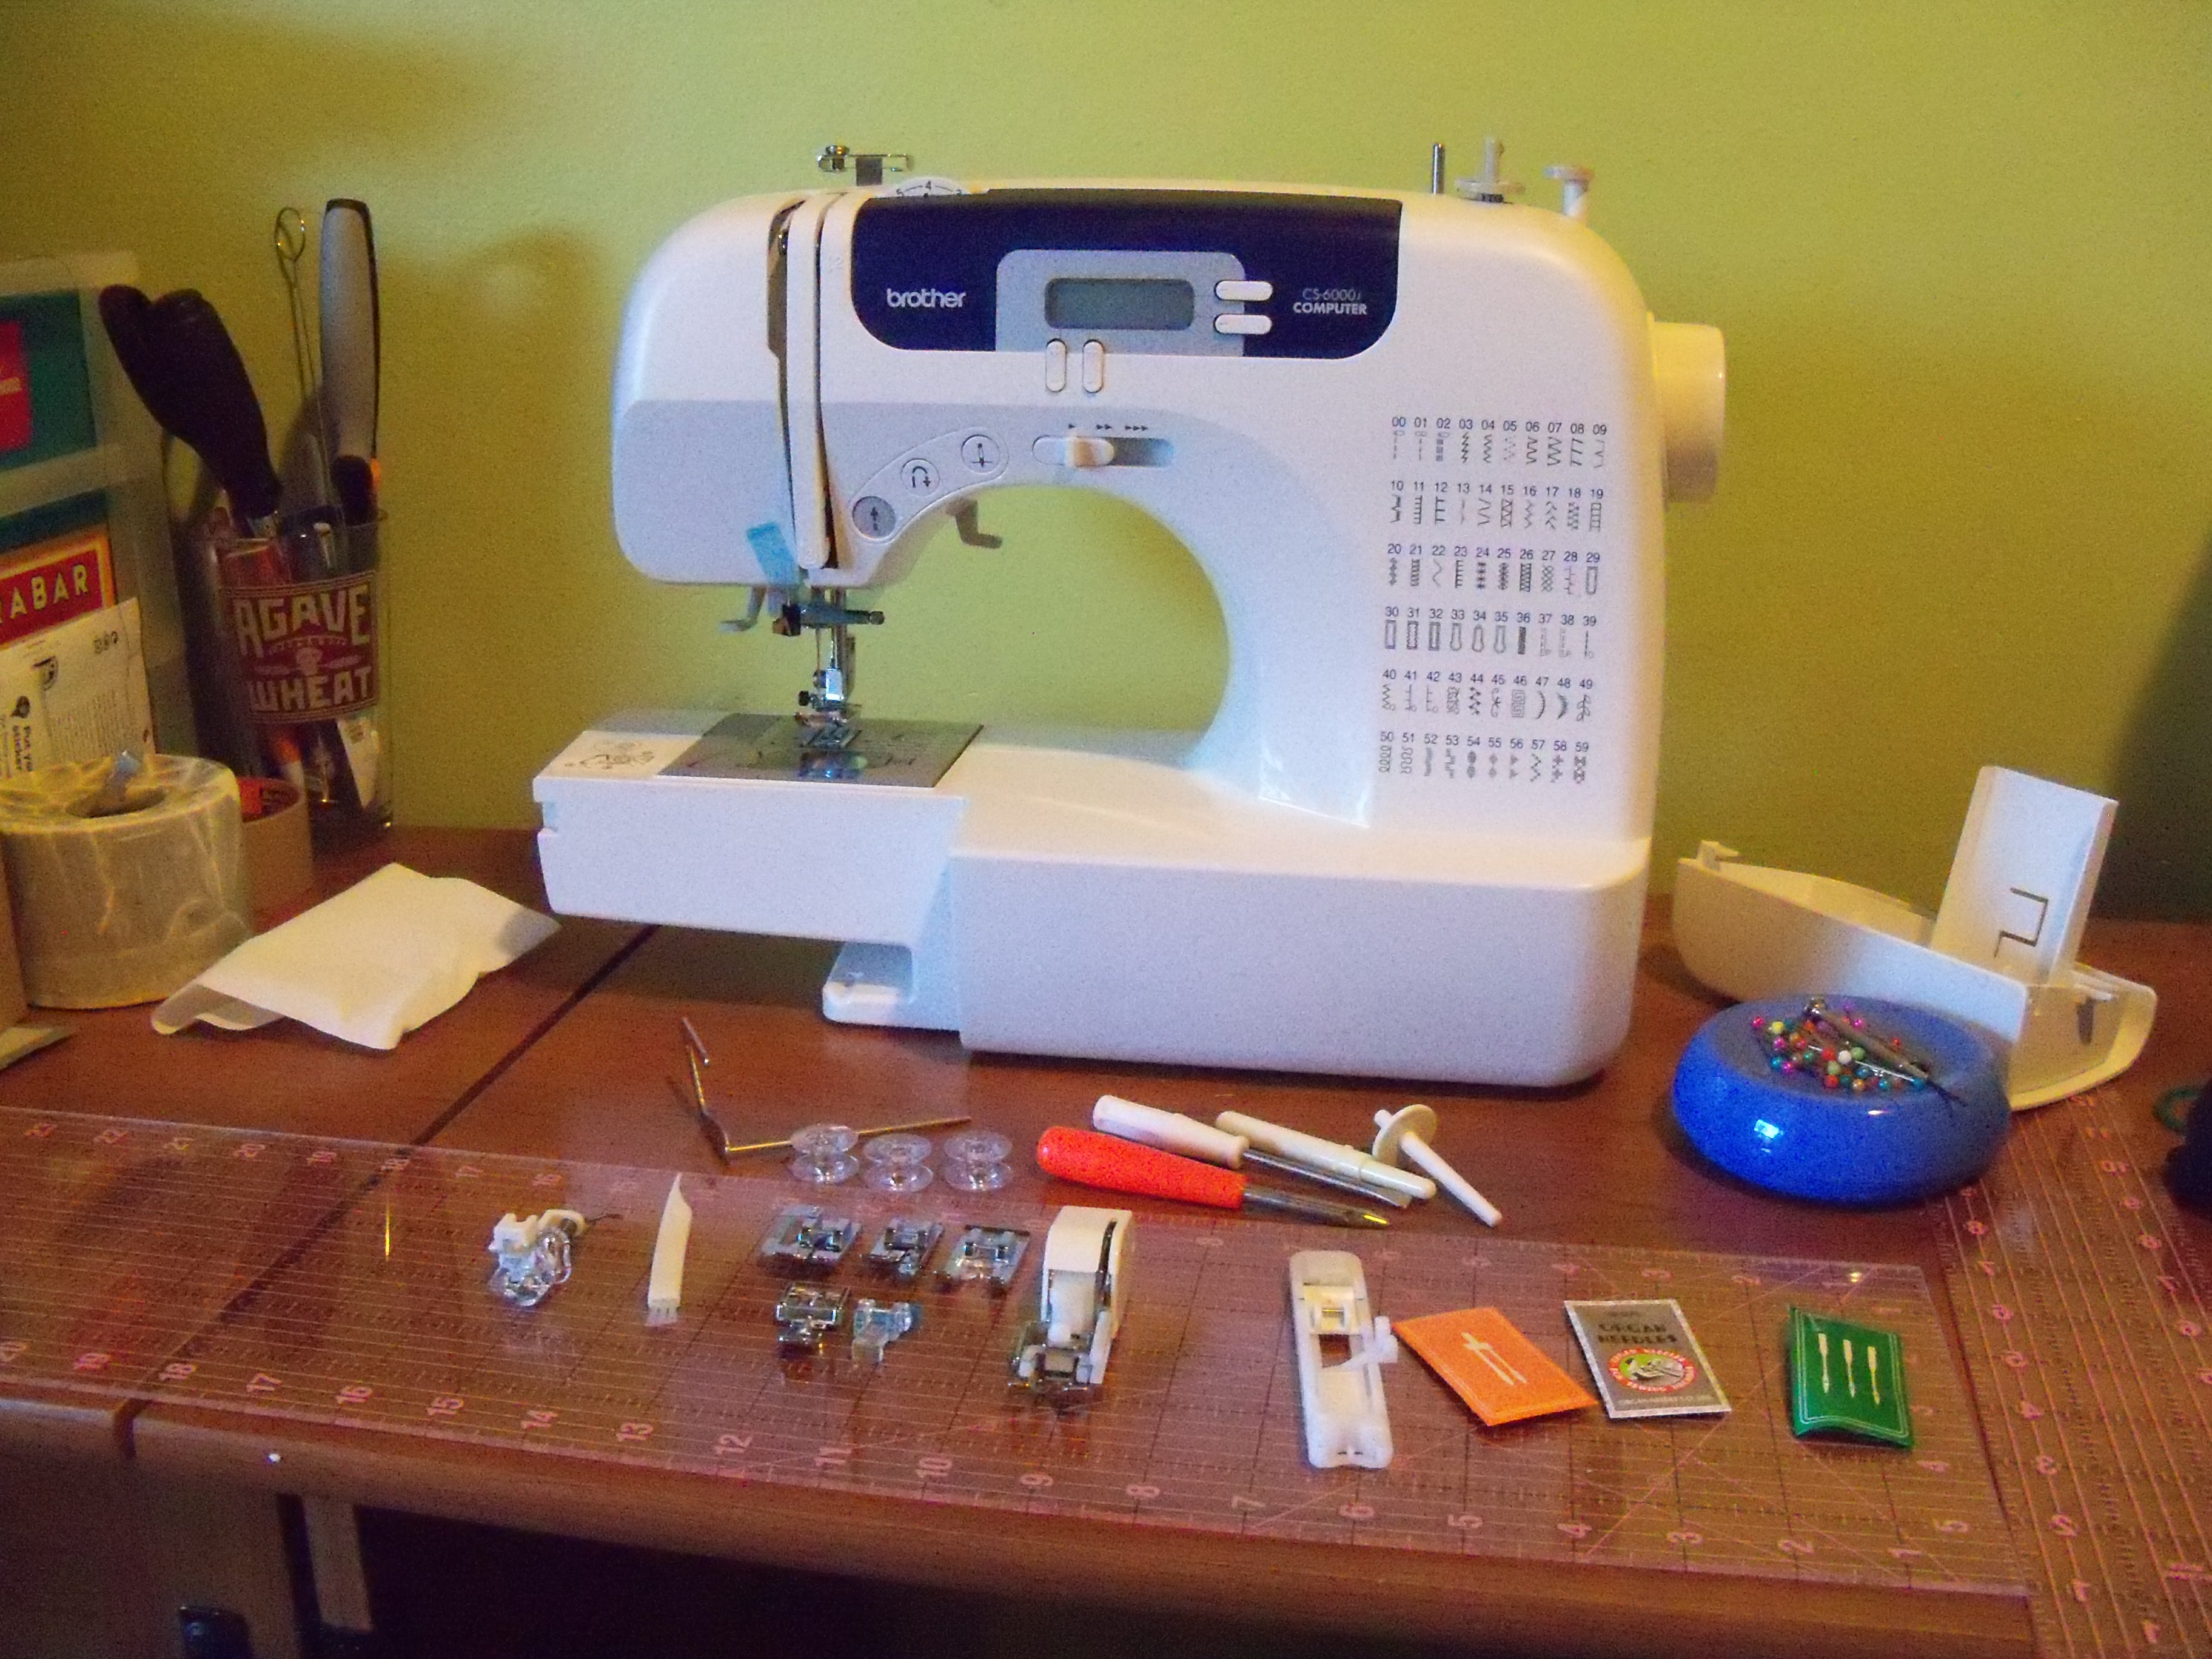 brothers 6000i sewing machine